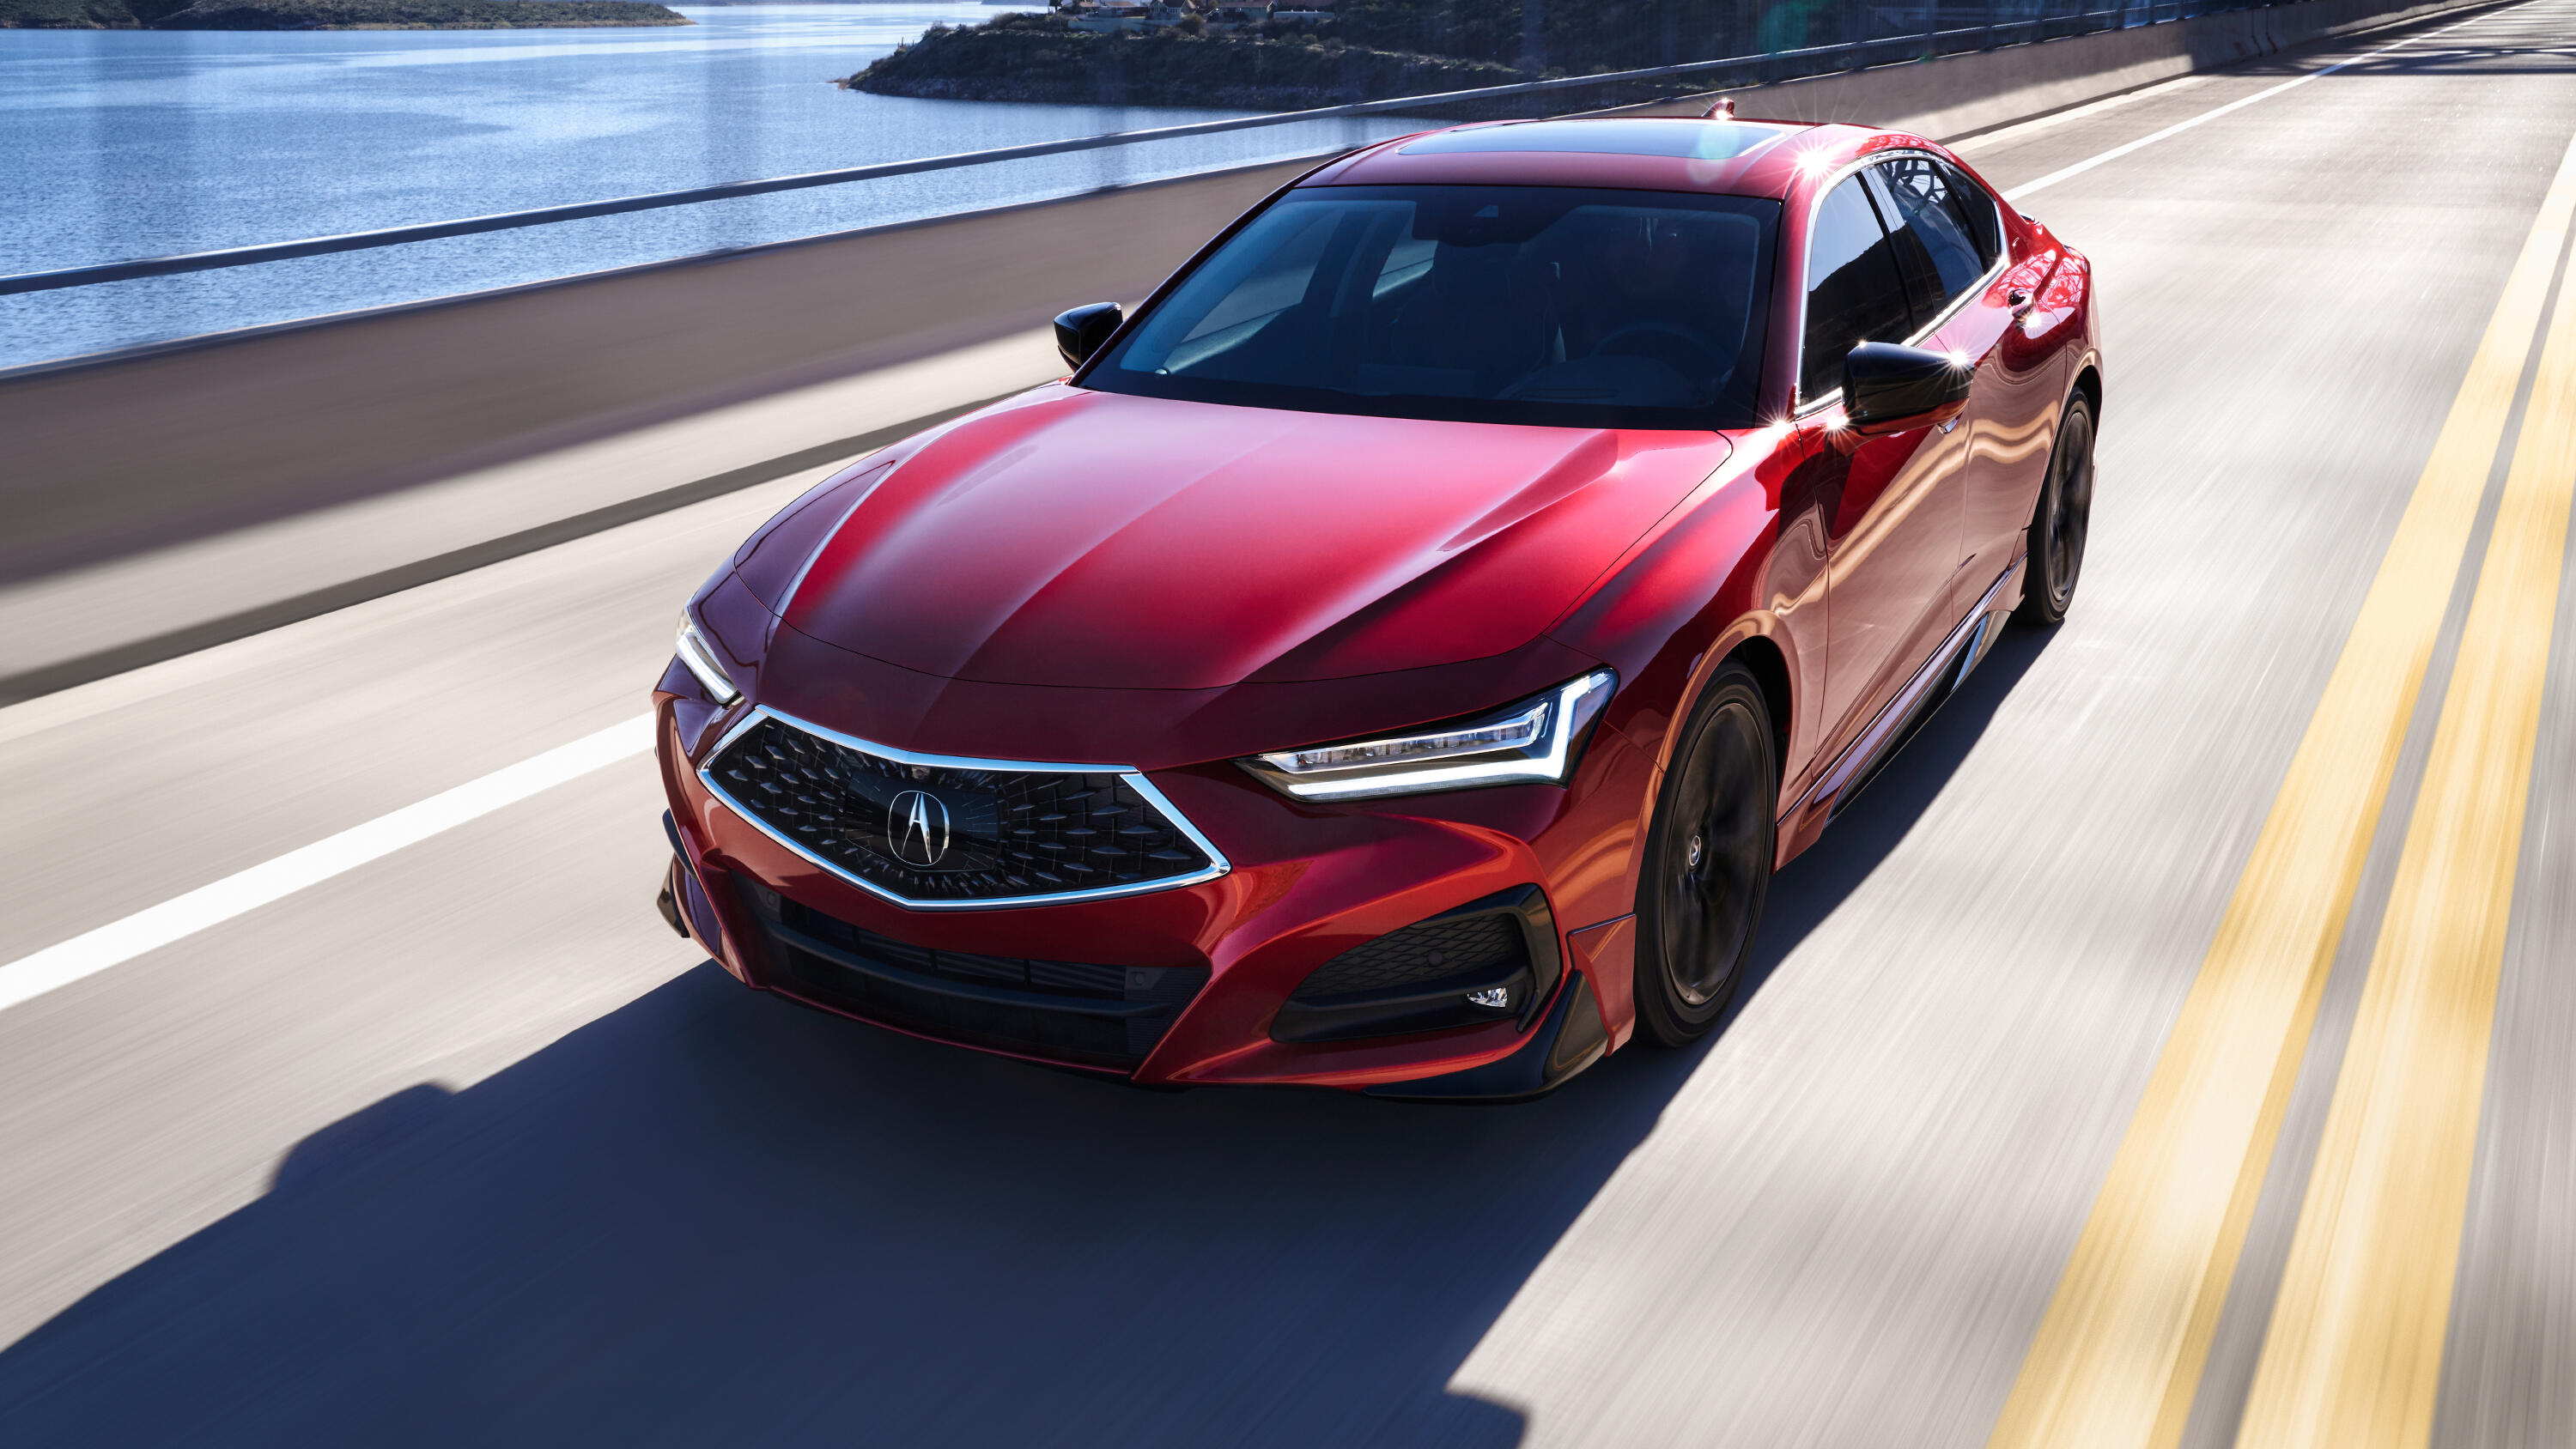 Video: 2021 Acura TLX: The Type S returns with turbo power